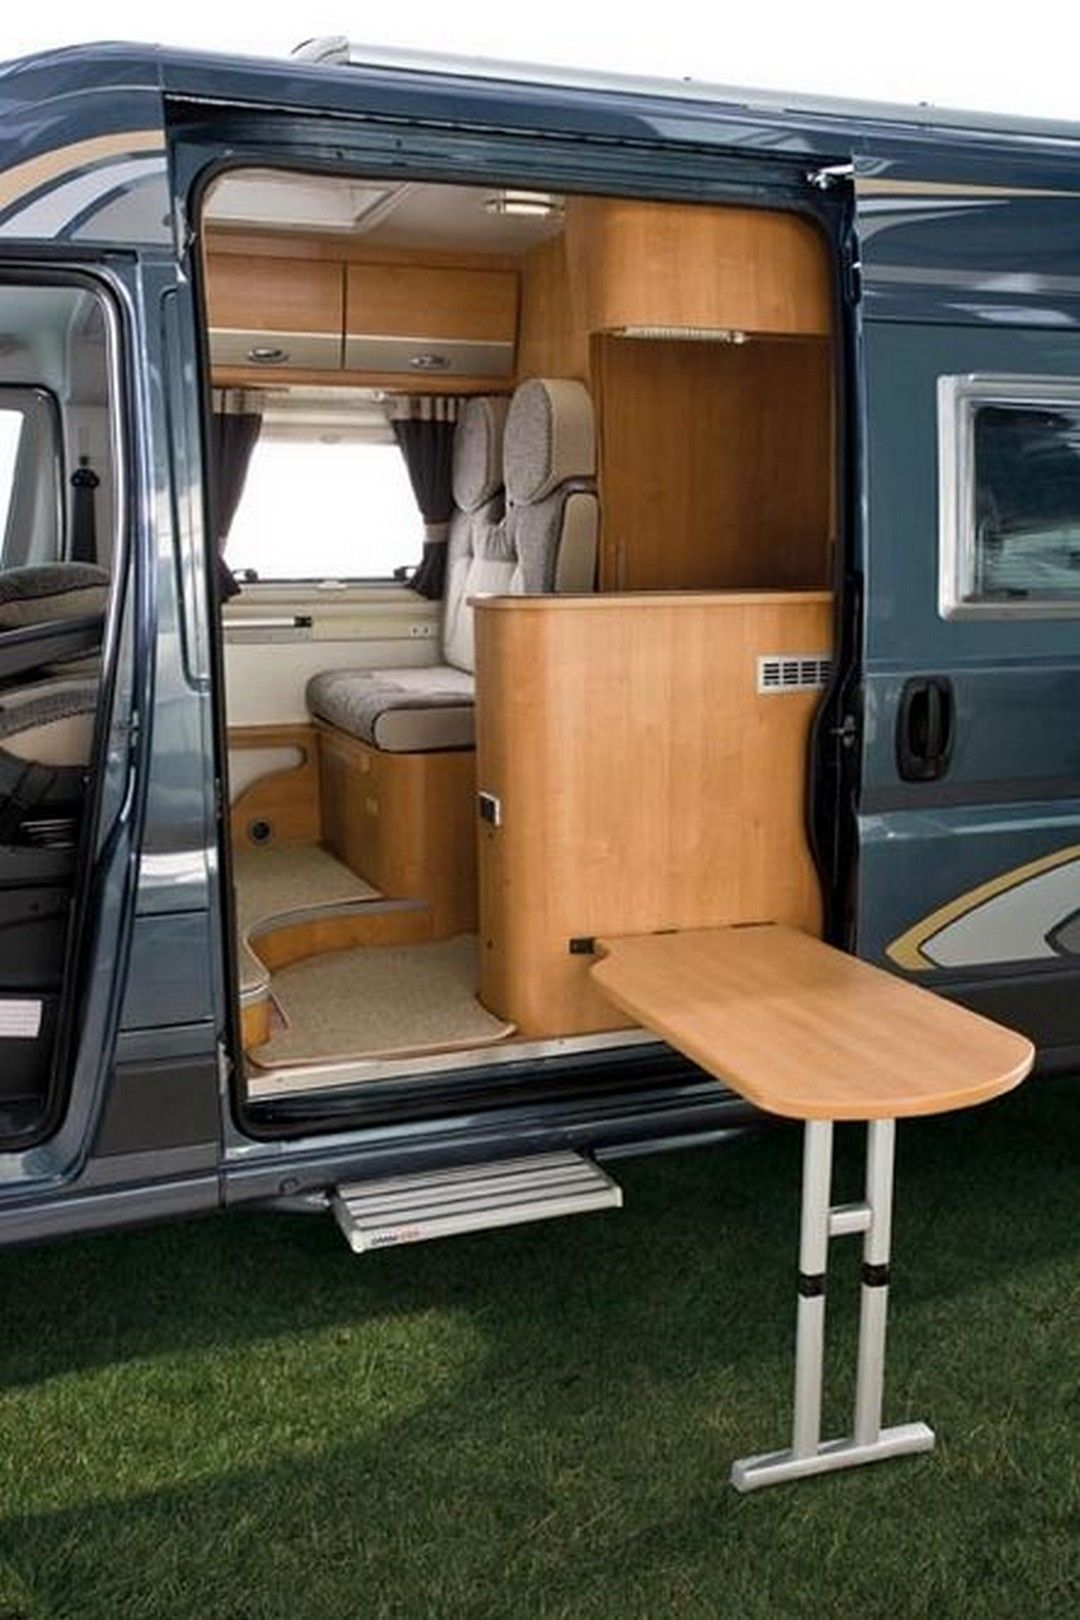 Awesome Sprinter Camper Van Conversion On Pinterest With Images